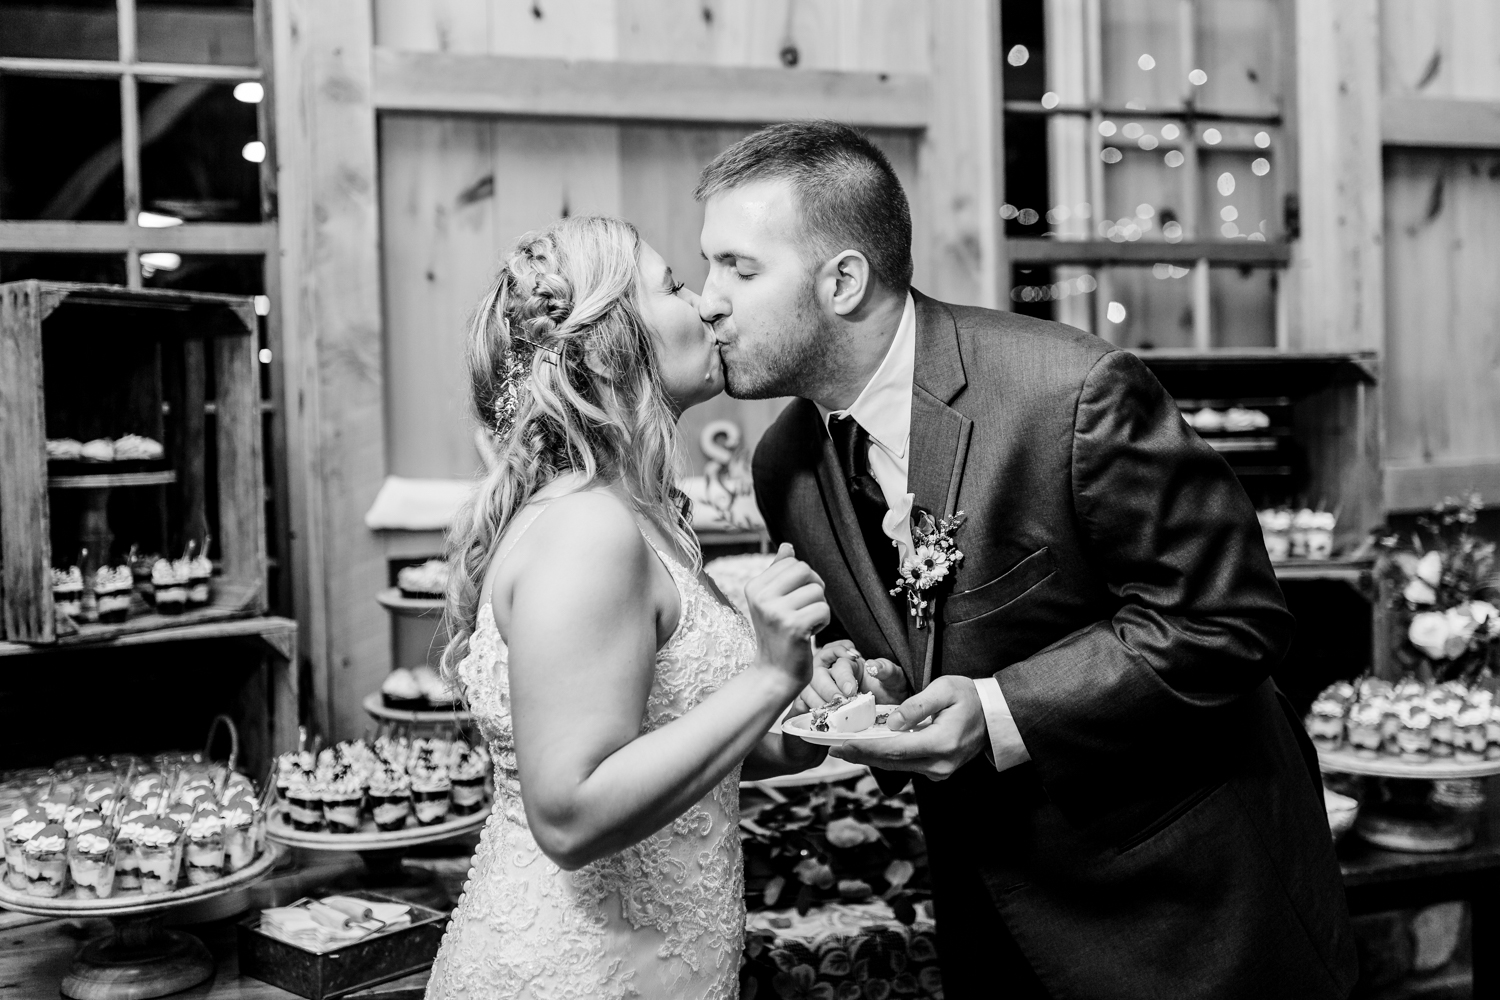 bride and groom kiss after their cake cutting - Maryland wedding photographer and cinematographer